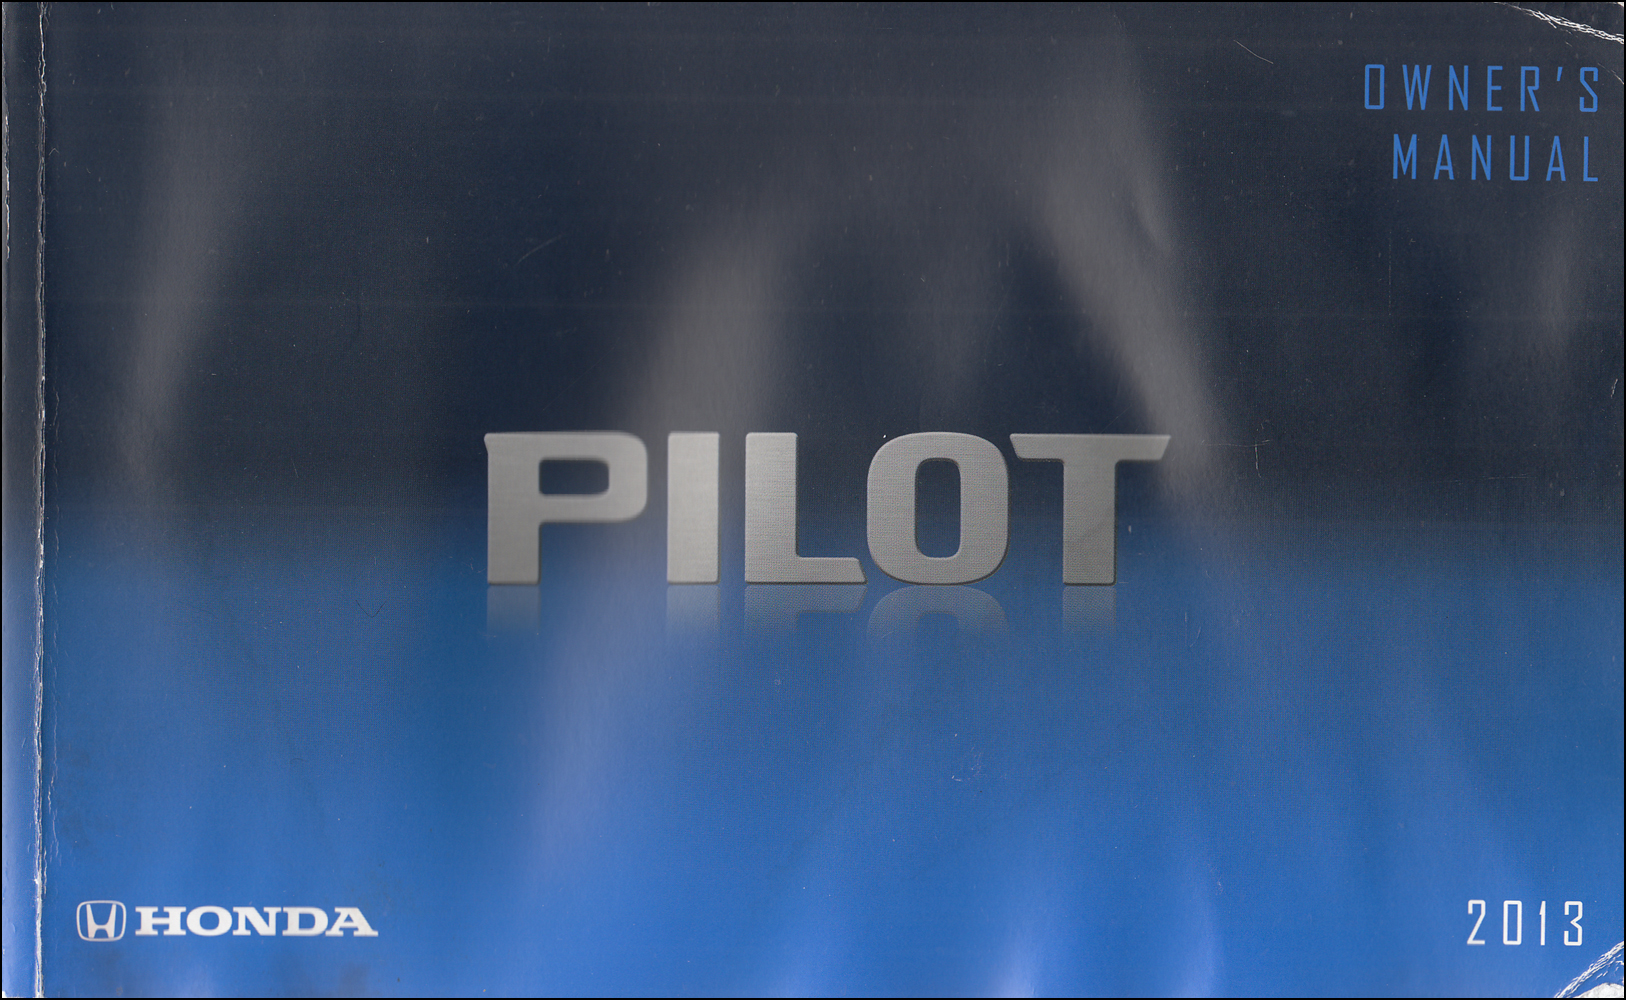 2013 Honda Pilot Owner's Manual Original